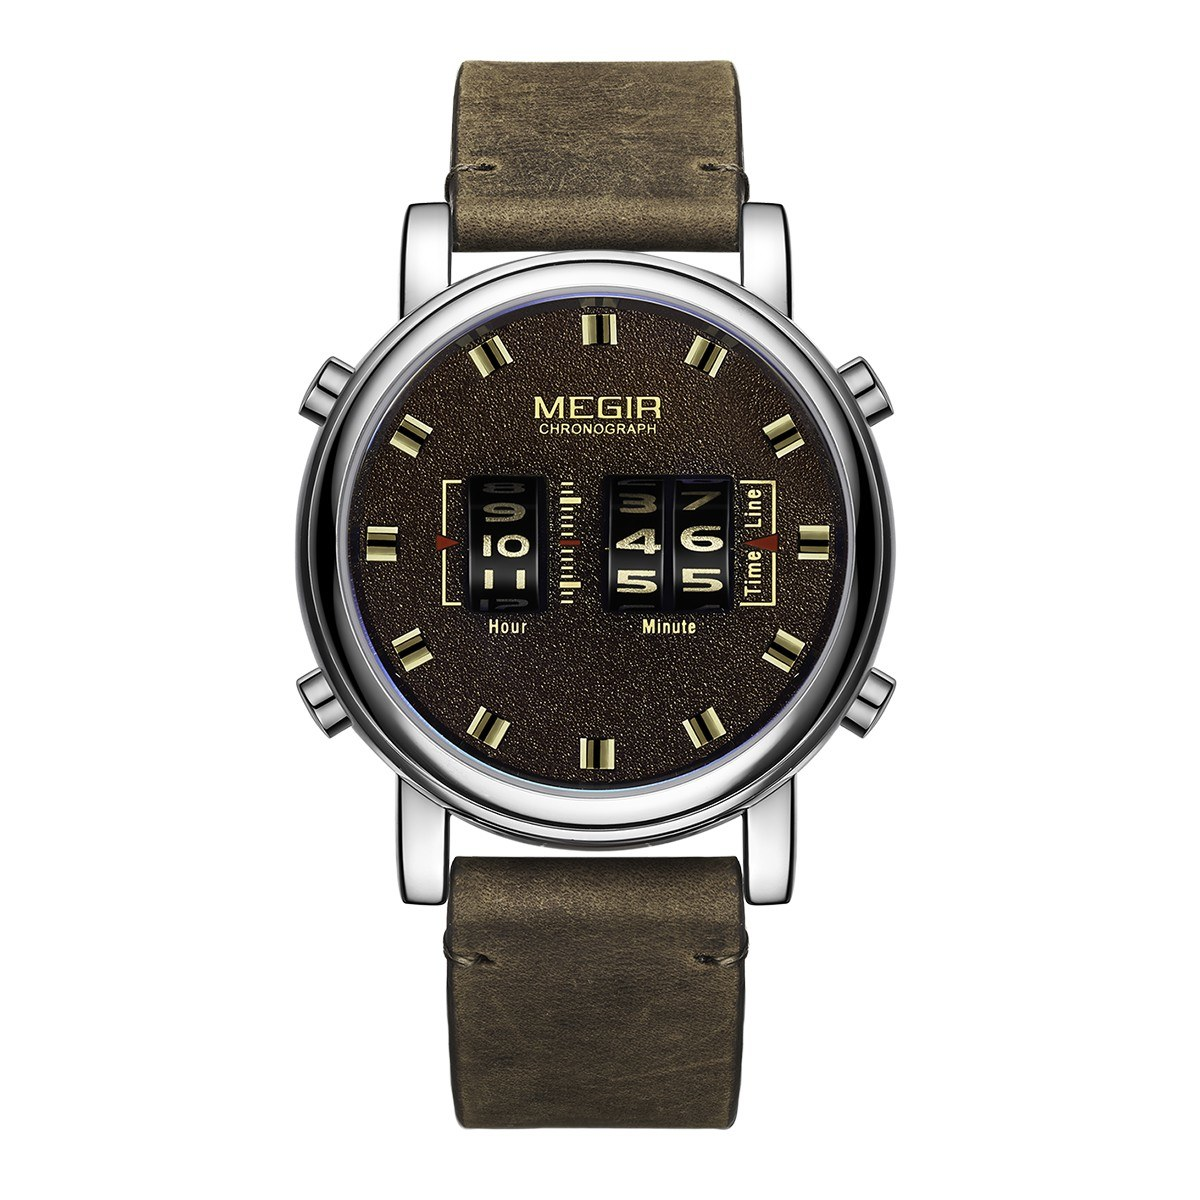 MEGIR 2137 Military Army Quartz Men Watch 3ATM Waterproof Drum-Type Roller Wrist Watch Outdoor Sports Clock Wristwatch with Leather Strap Band